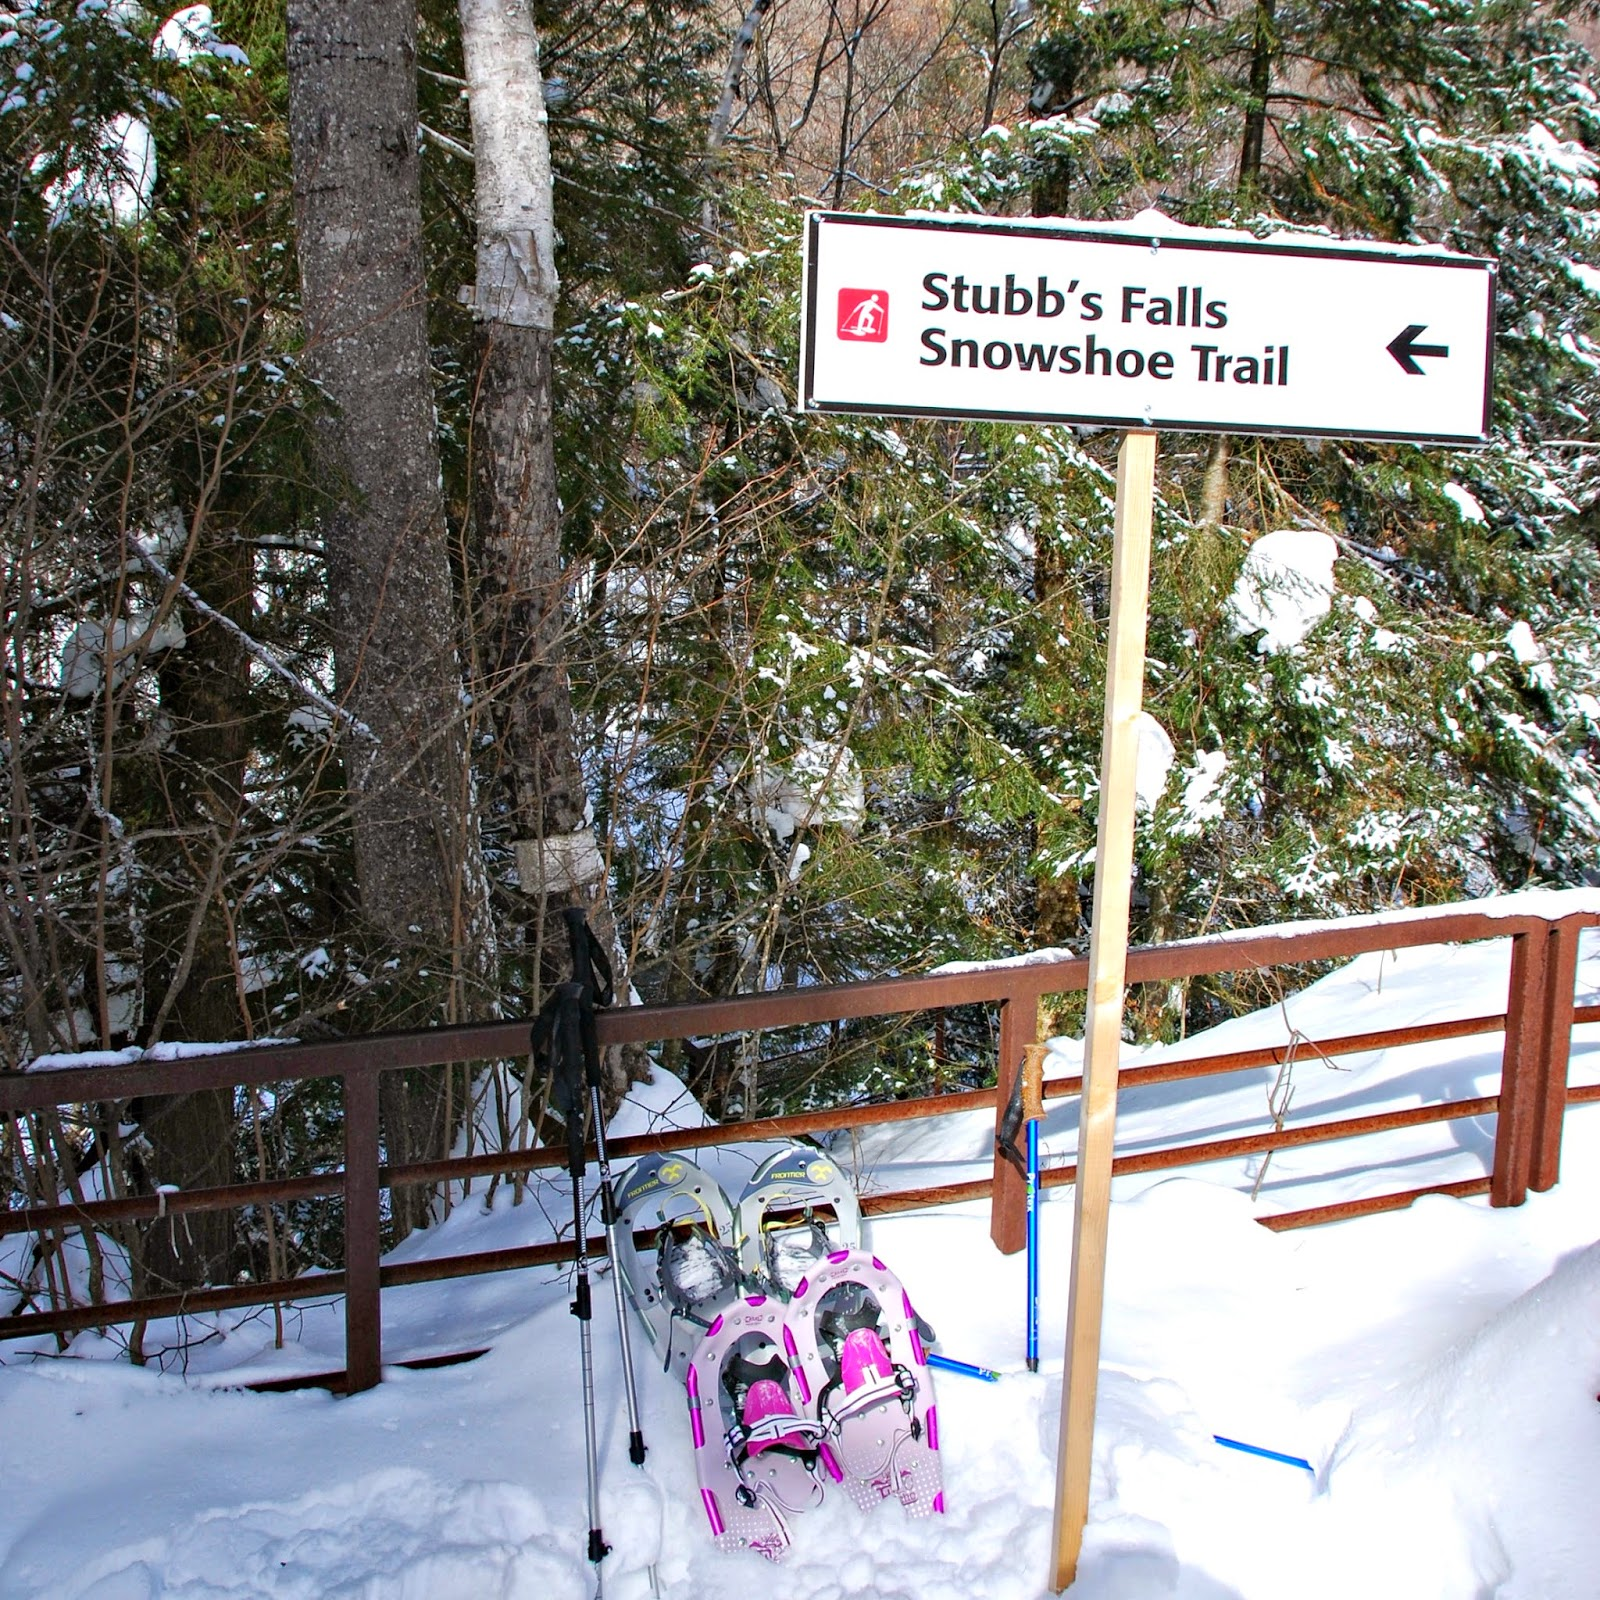 Snowshoe Trail sign with snow and snowshoes